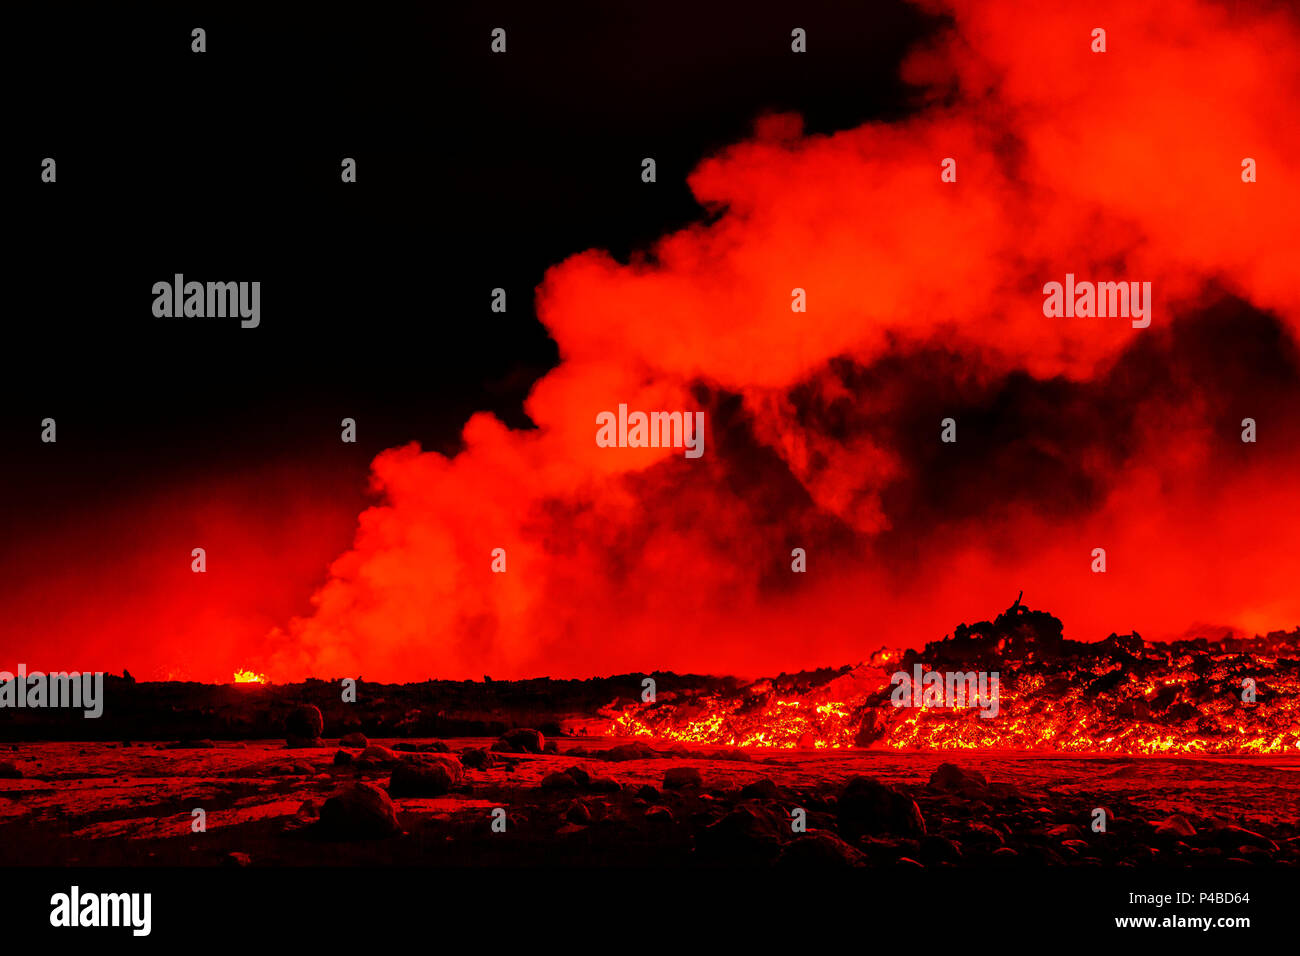 Volcano eruption at the Holuhraun Fissure near Bardarbunga Volcano, Iceland August 29, 2014, a fissure eruption started in Holuhraun at the northern end of a magma intrusion that had moved progressively north, from the Bardarbunga volcano.. Bardarbunga is a stratovolcano located under Vatnajokull, Icelands most extensive glacier. Picture Date-Sept 2, 2014 - Stock Image